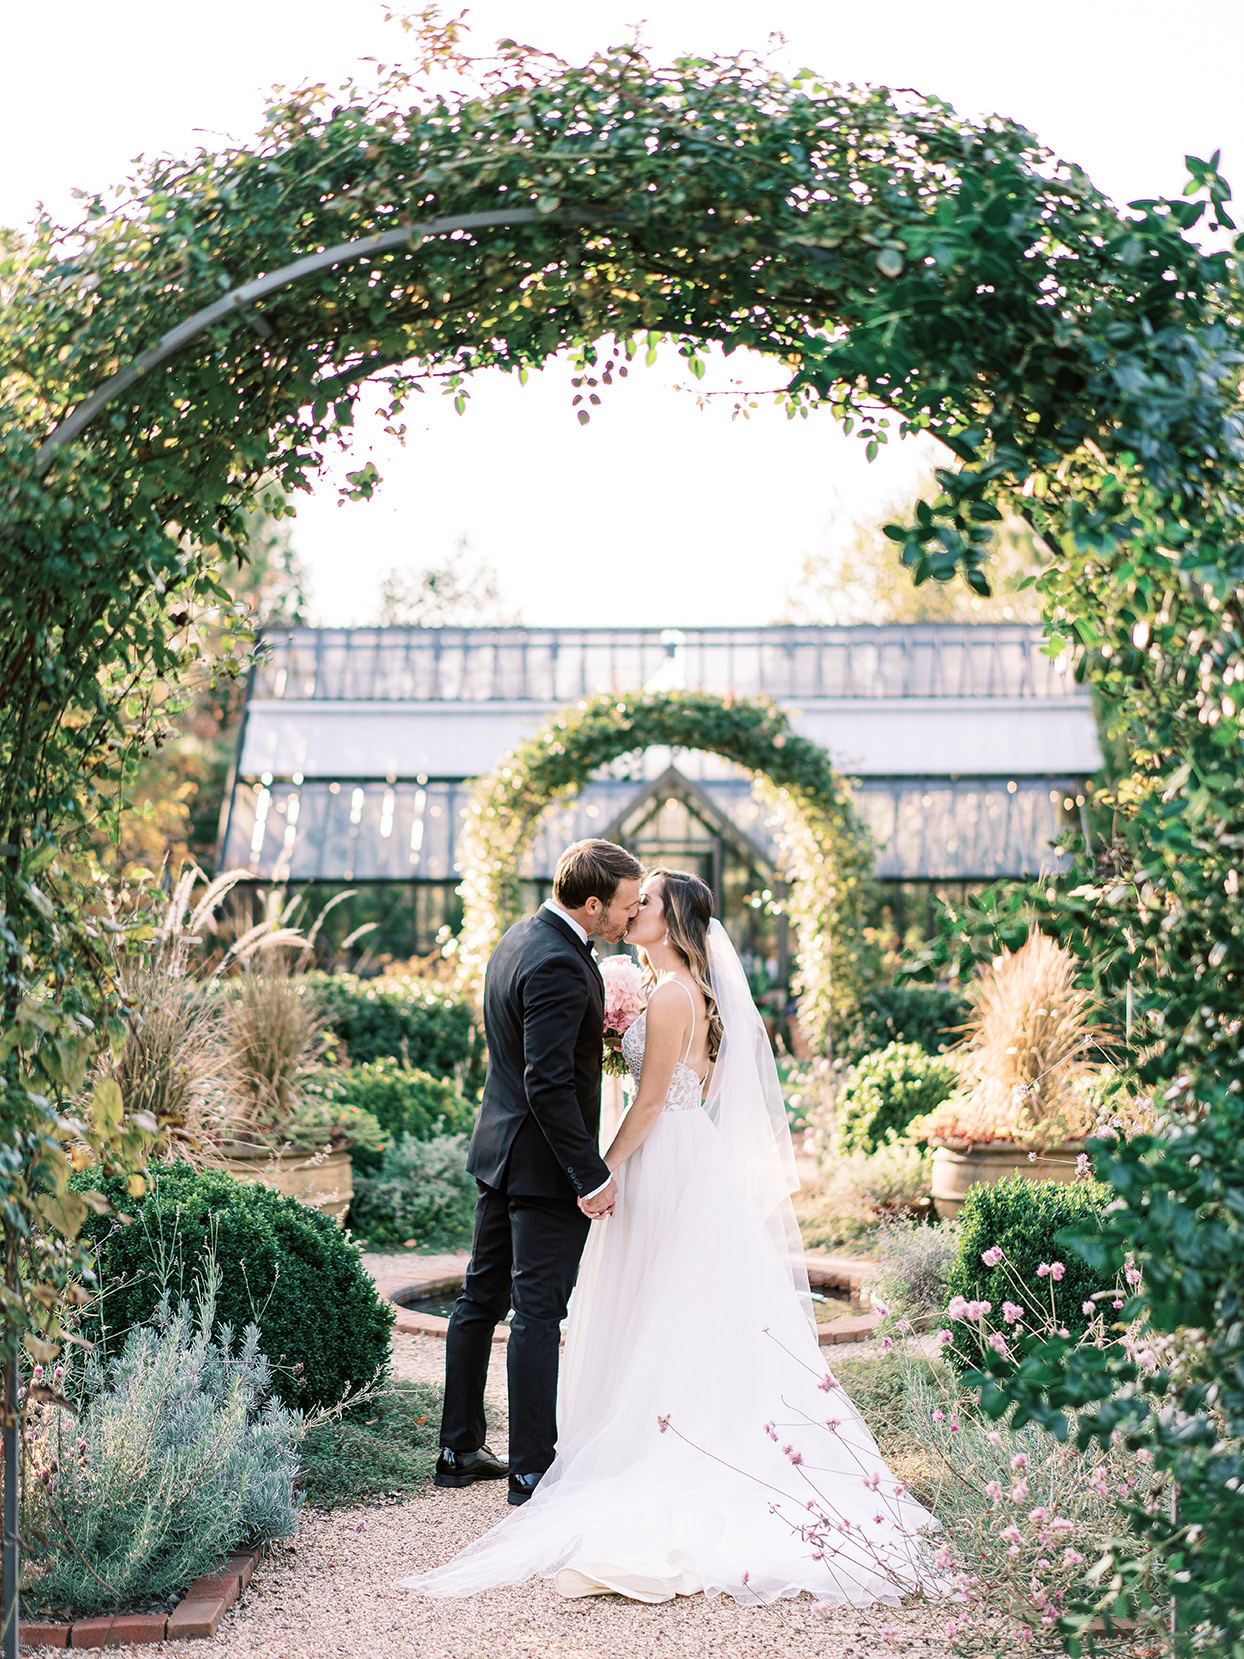 wedding couple kissing under floral arch in garden